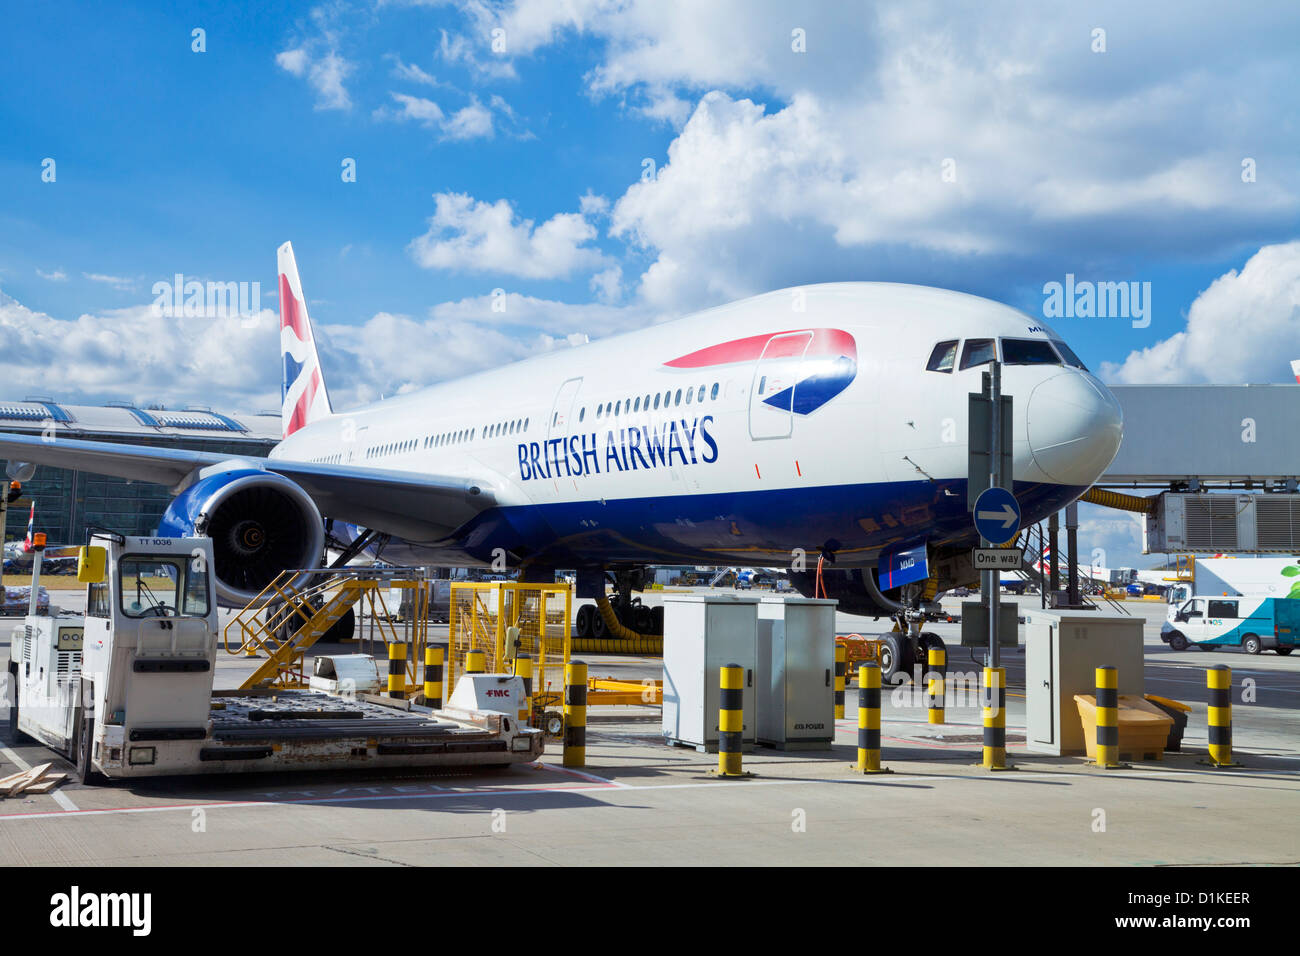 British Airways piano pronto per l'imbarco essendo caricato con i bagagli e pasti all'aeroporto di Heathrow Immagini Stock